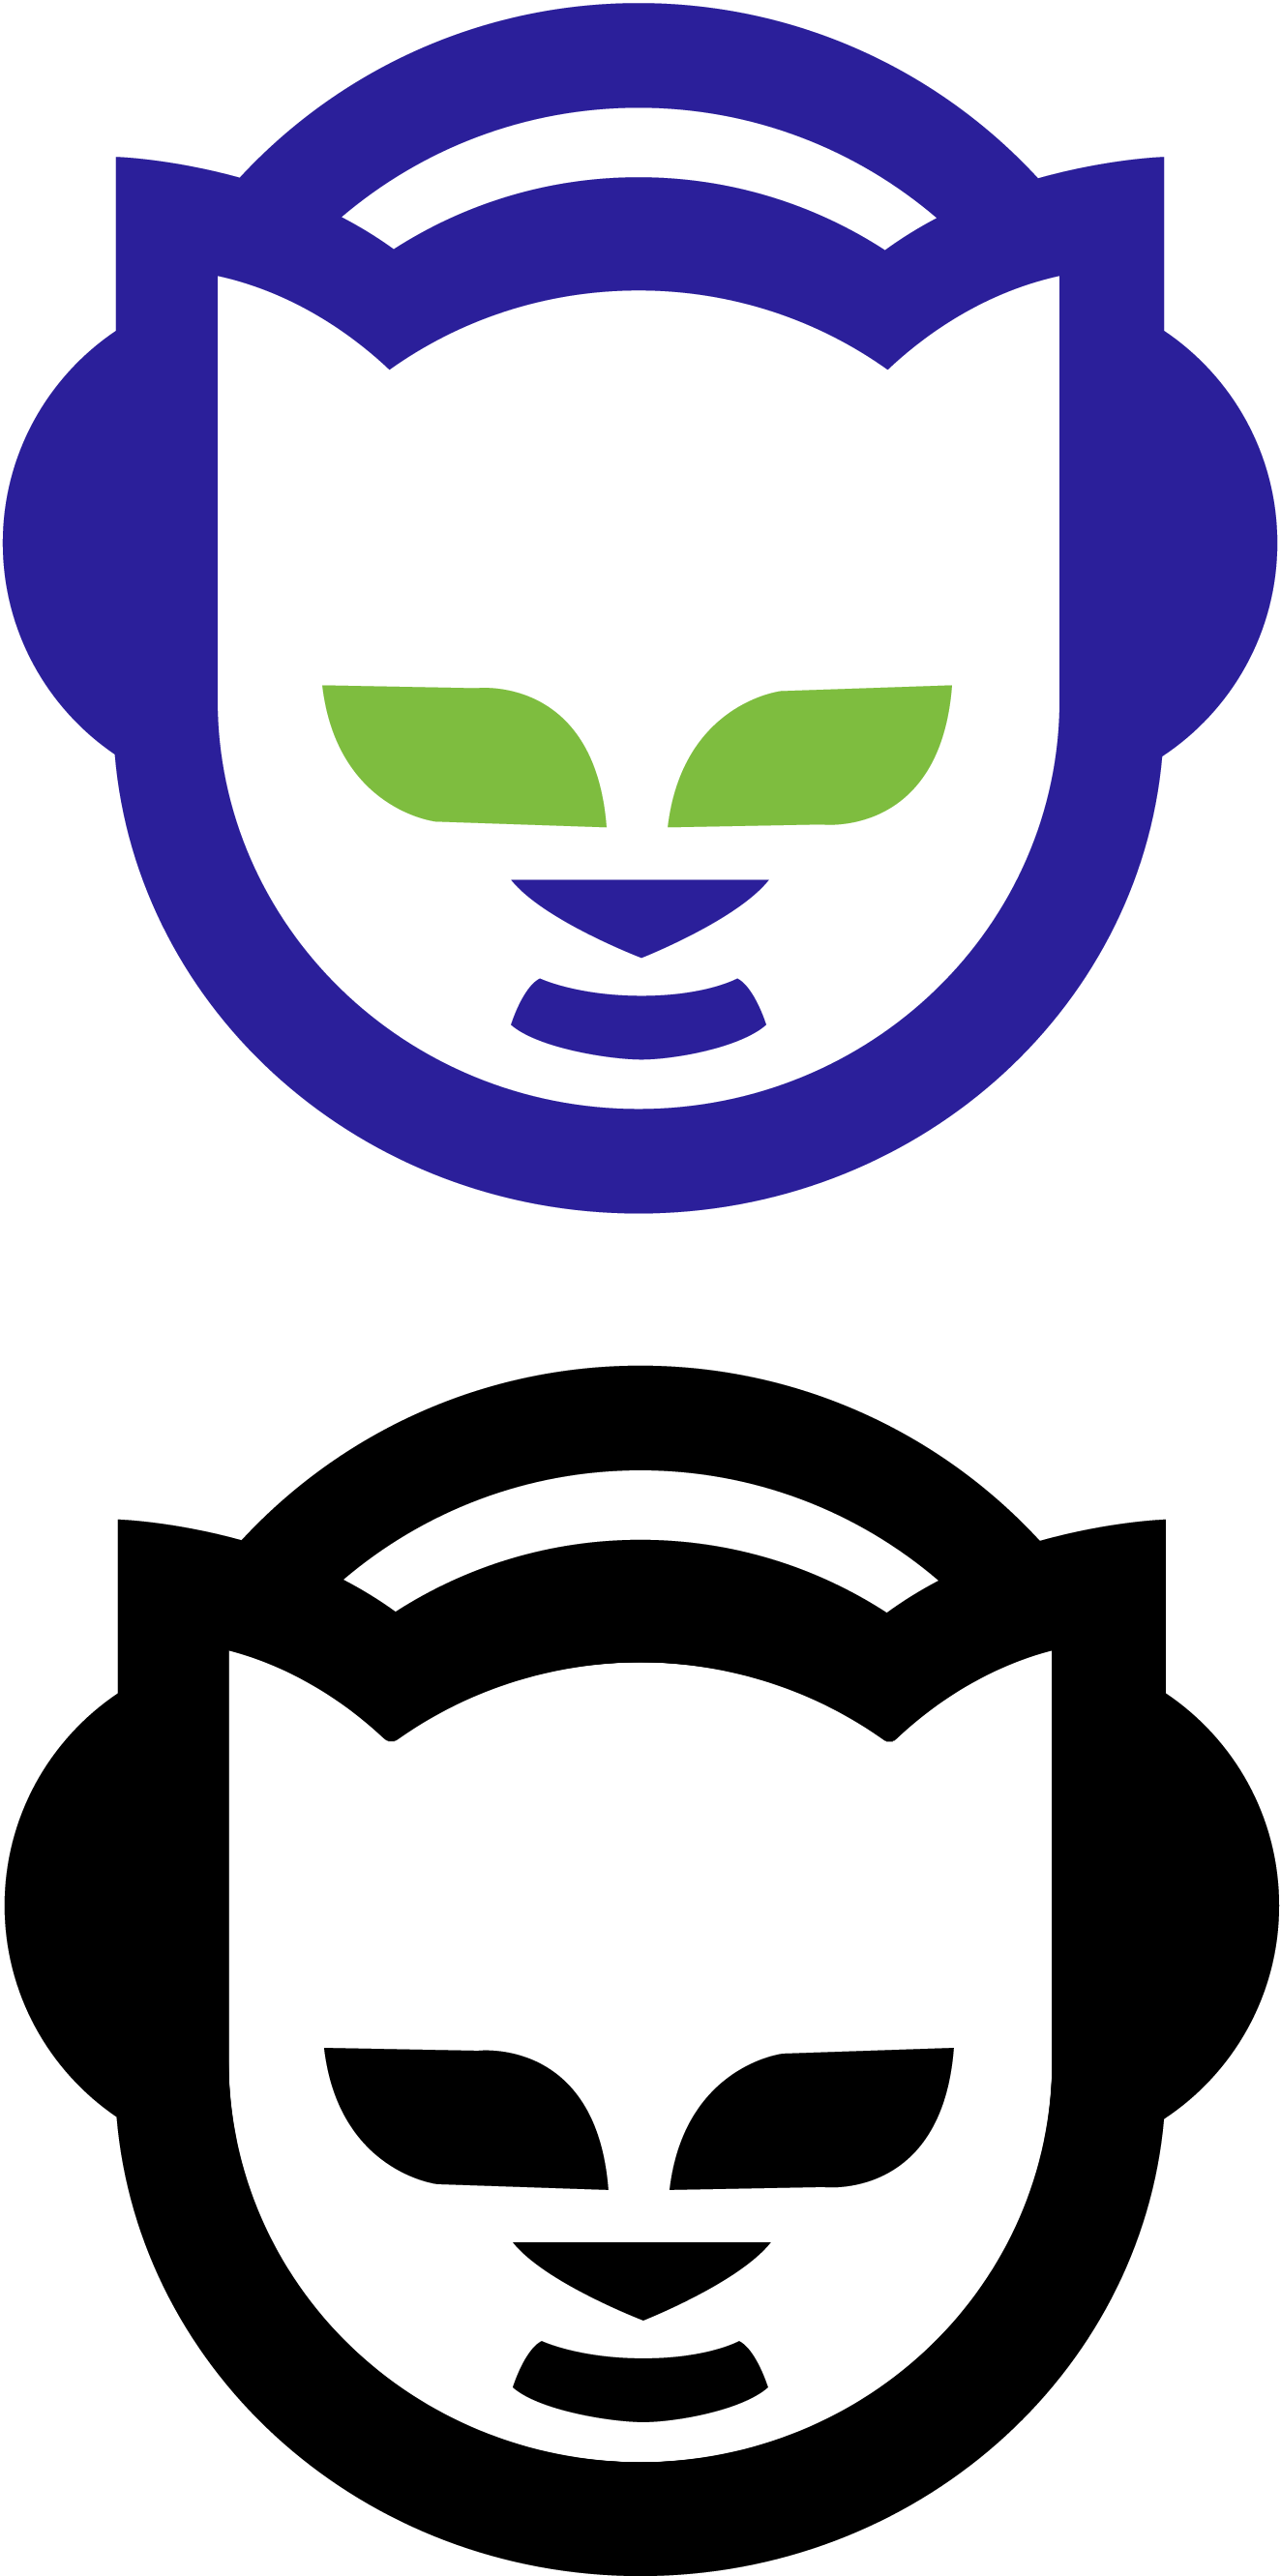 Free Vector Napster 0 - Napster Vector, Transparent background PNG HD thumbnail